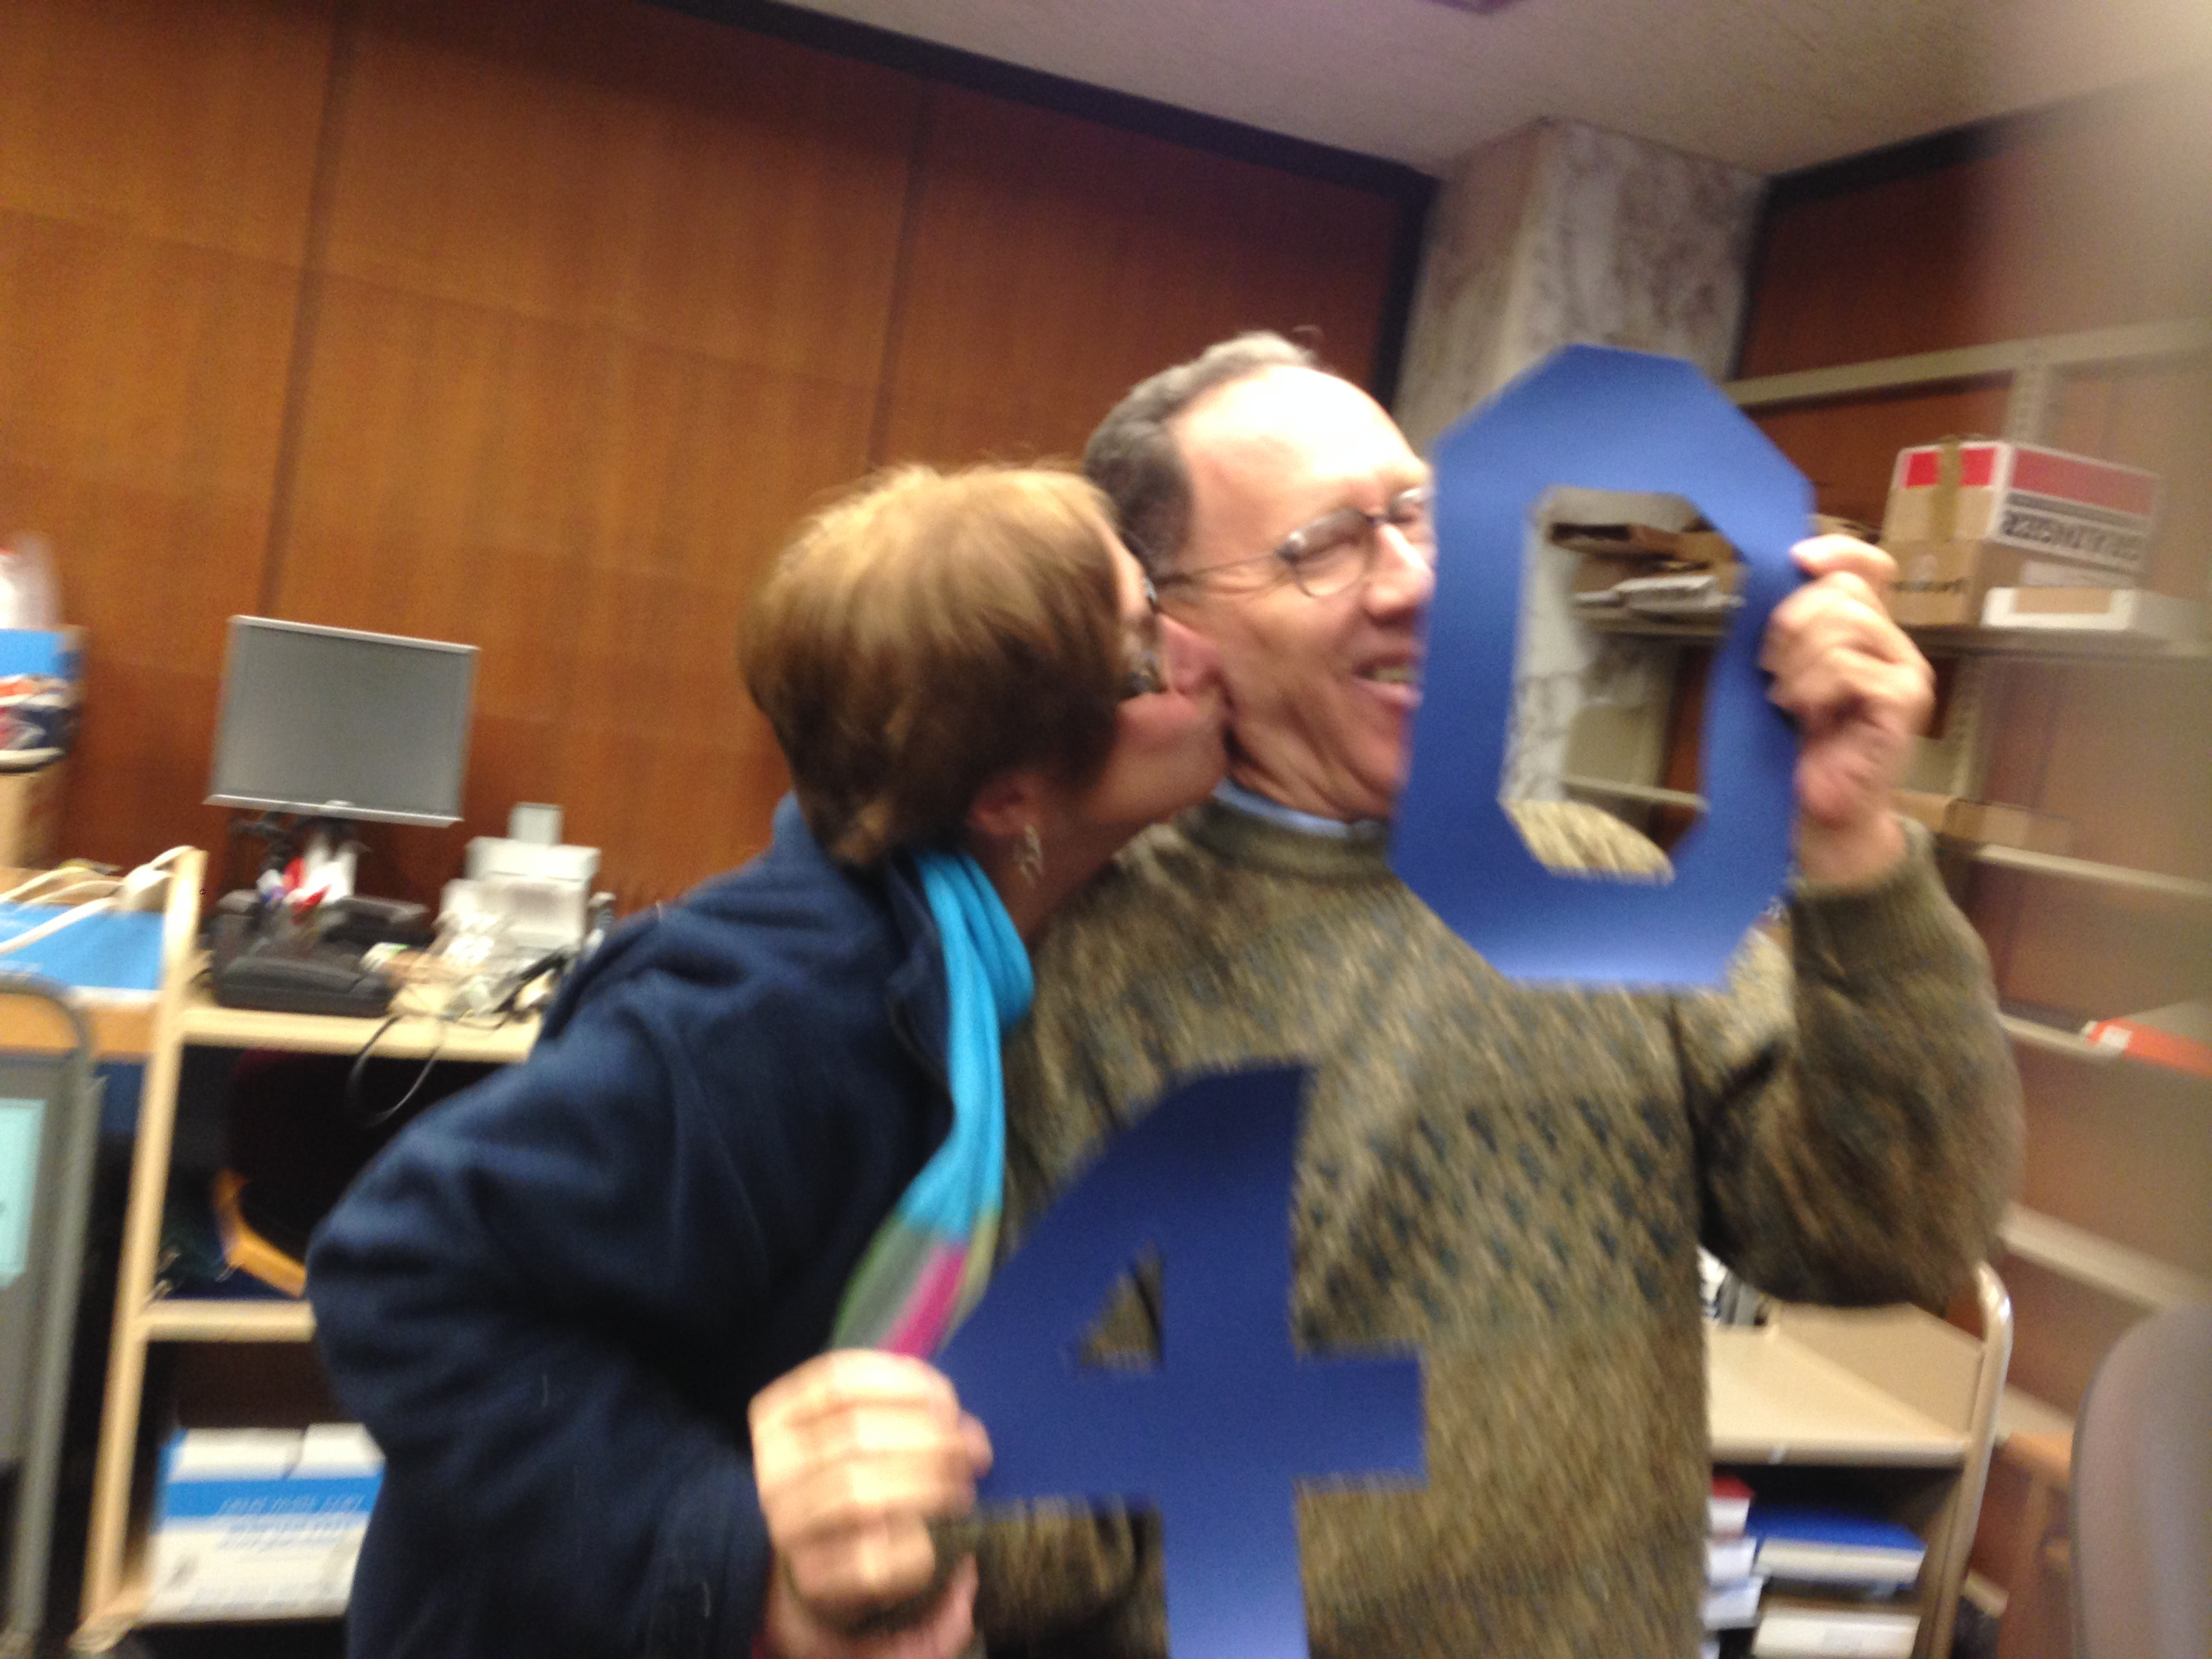 We said congrats to Access Services' Bill Greene for his 40th Year Service Anniversary (here he's getting a congrats kiss from Ann Stango!)